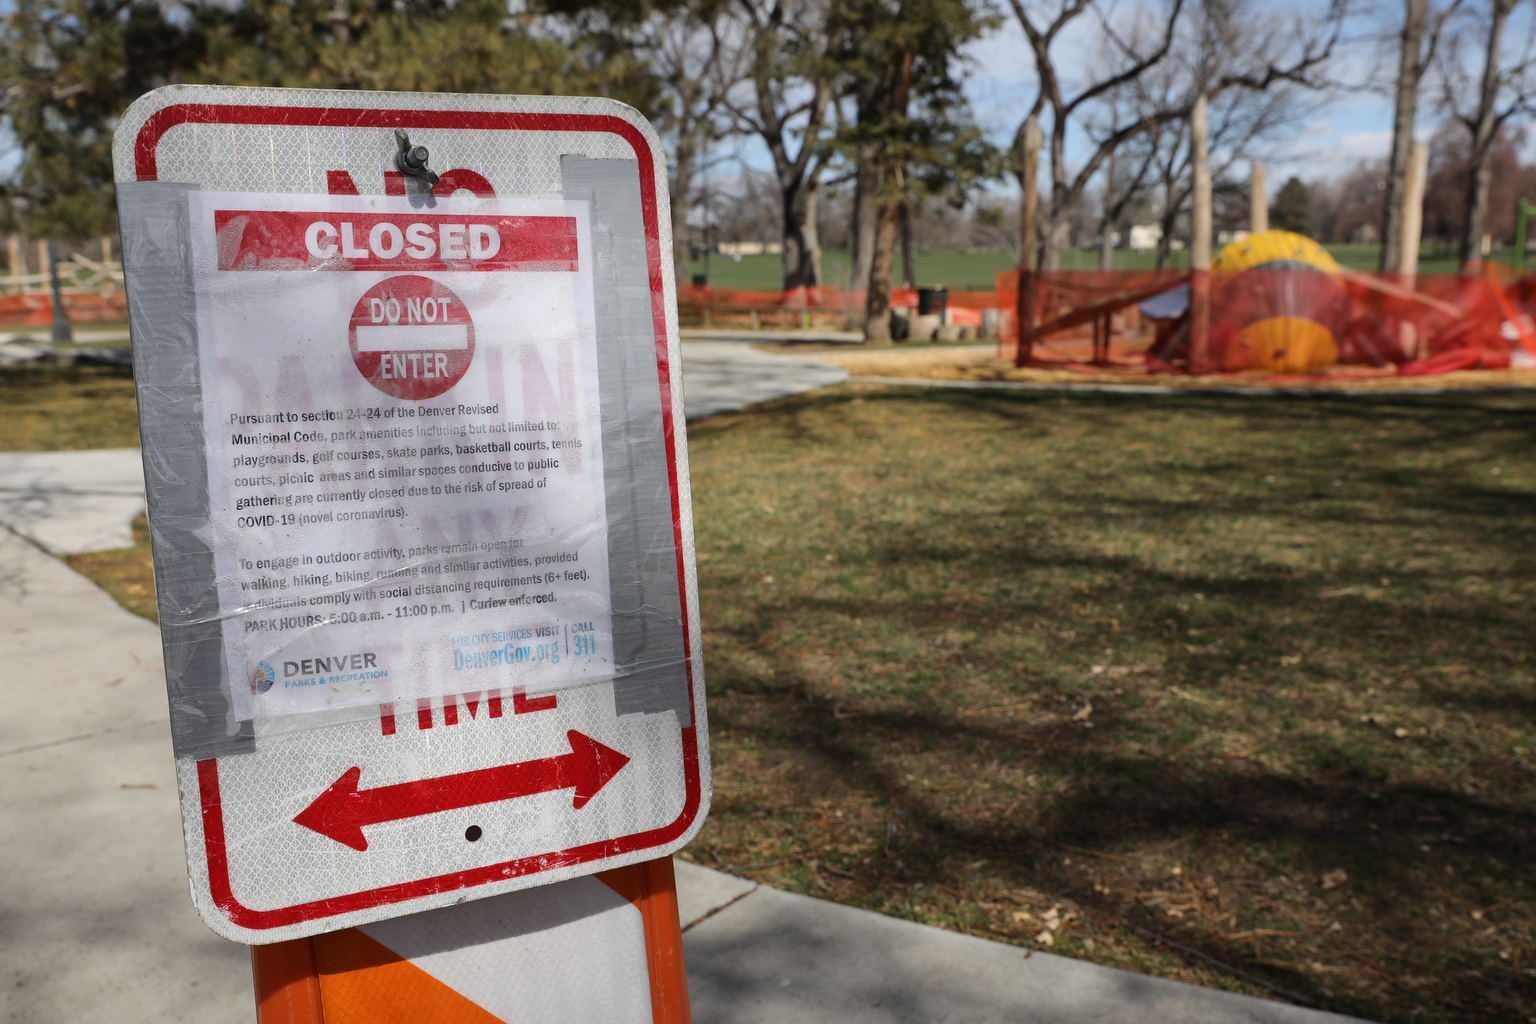 Denver Washington Park Playground Closed During Coronavirus Outbreak